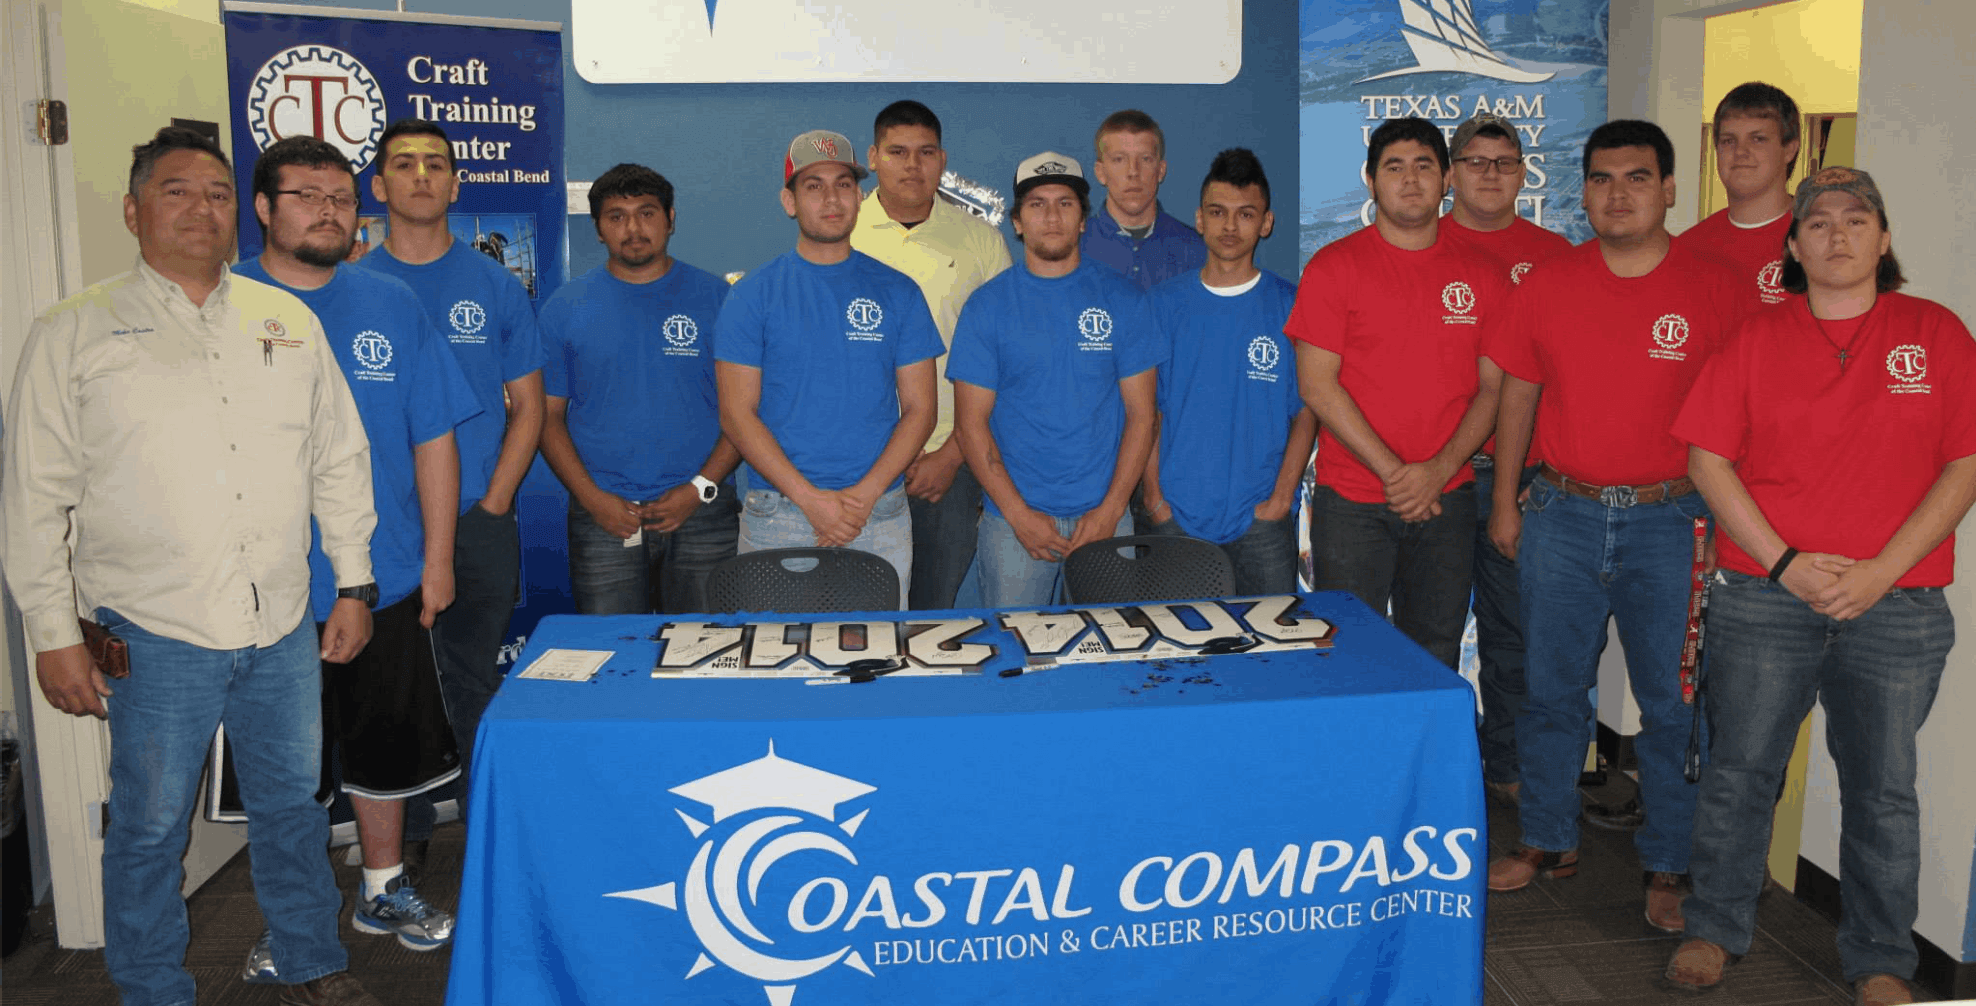 Craft Training Center at Coastal Compass